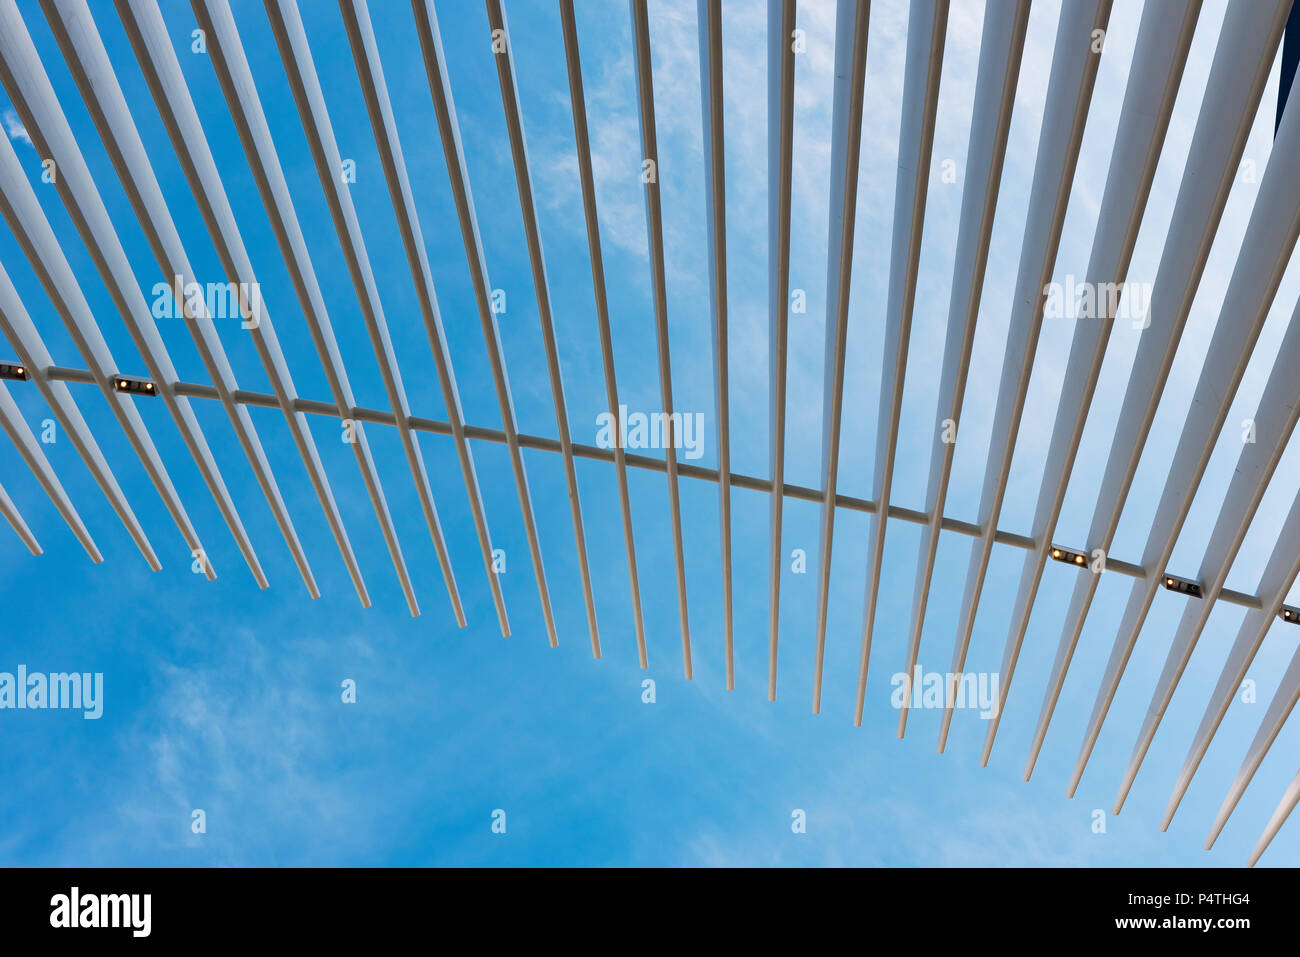 Roof of Oculus Station building, World Trade Center, New York City, USA - Stock Image